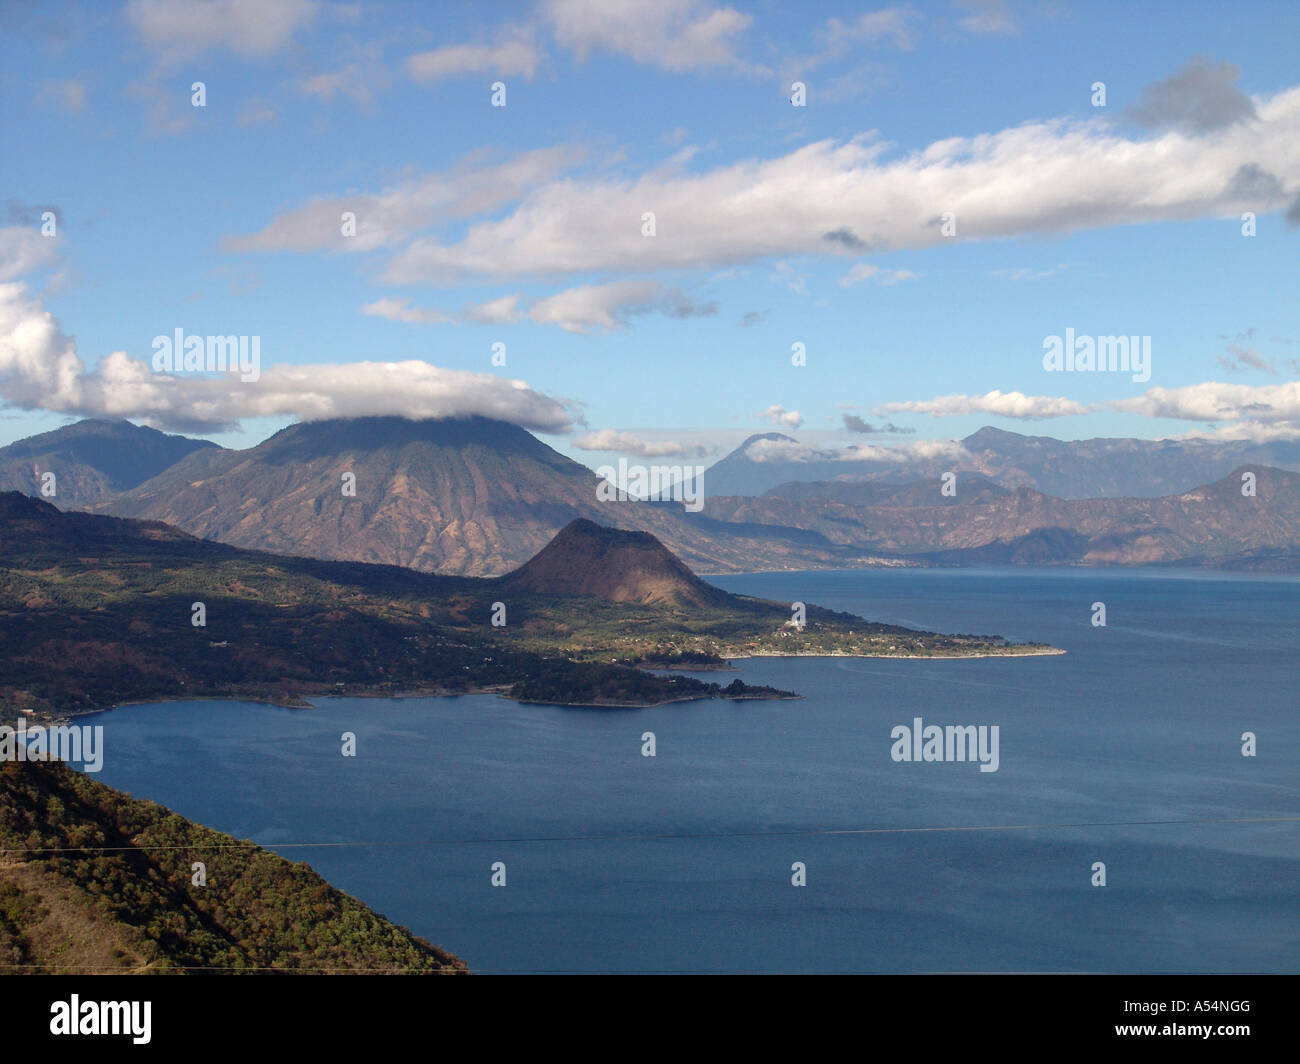 Painet ip1708 guatemala view over lake atitlan country developing nation less economically developed culture emerging Stock Photo